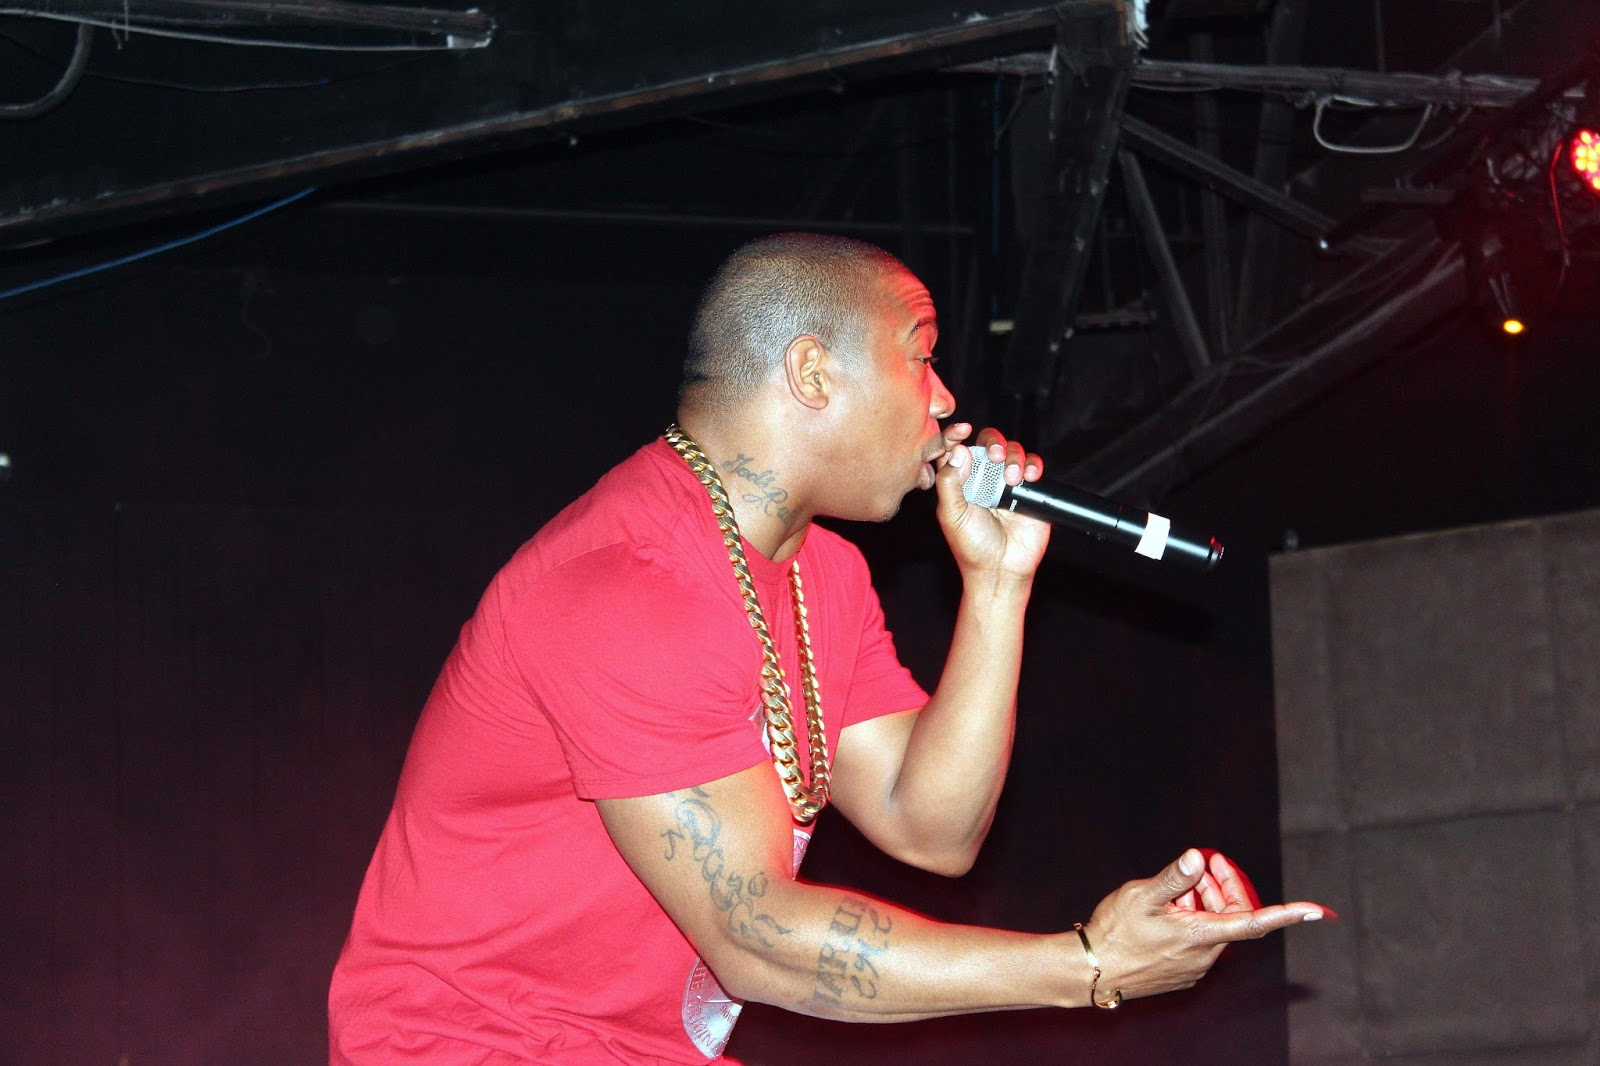 ja rule had an ear for beats that were catchy but not compromising an ability to write and find hooks and collaborators that bolstered his raps